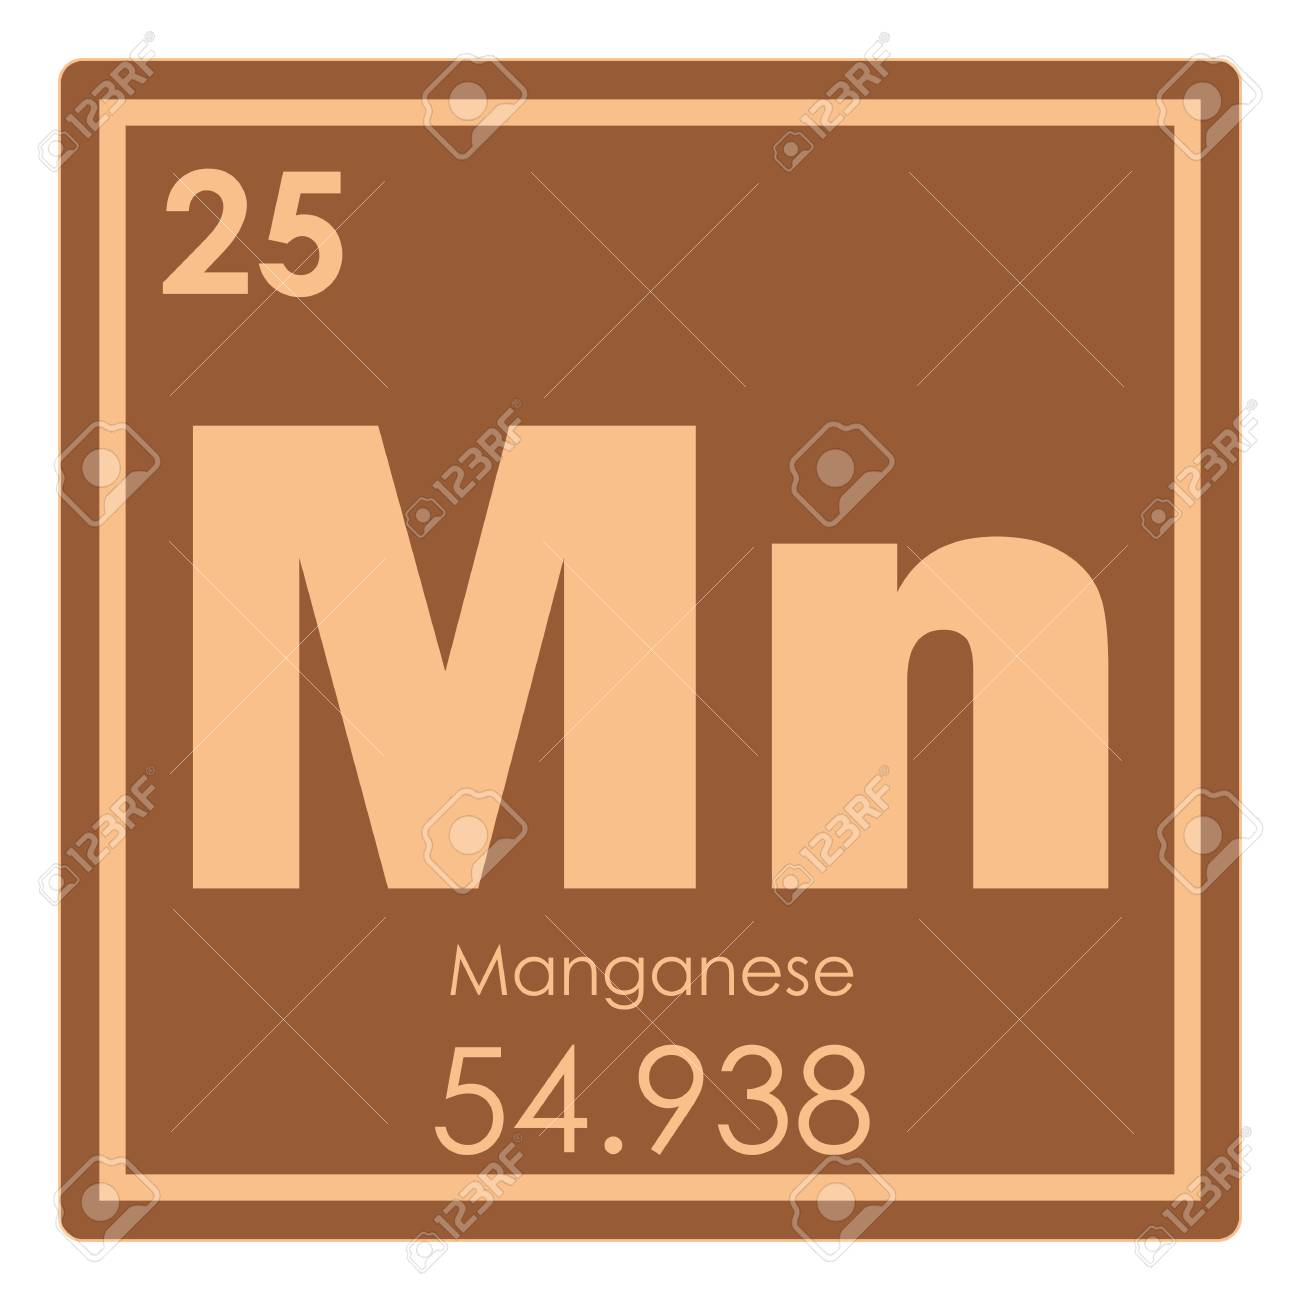 Manganese chemical element periodic table science symbol stock photo manganese chemical element periodic table science symbol stock photo 95132663 urtaz